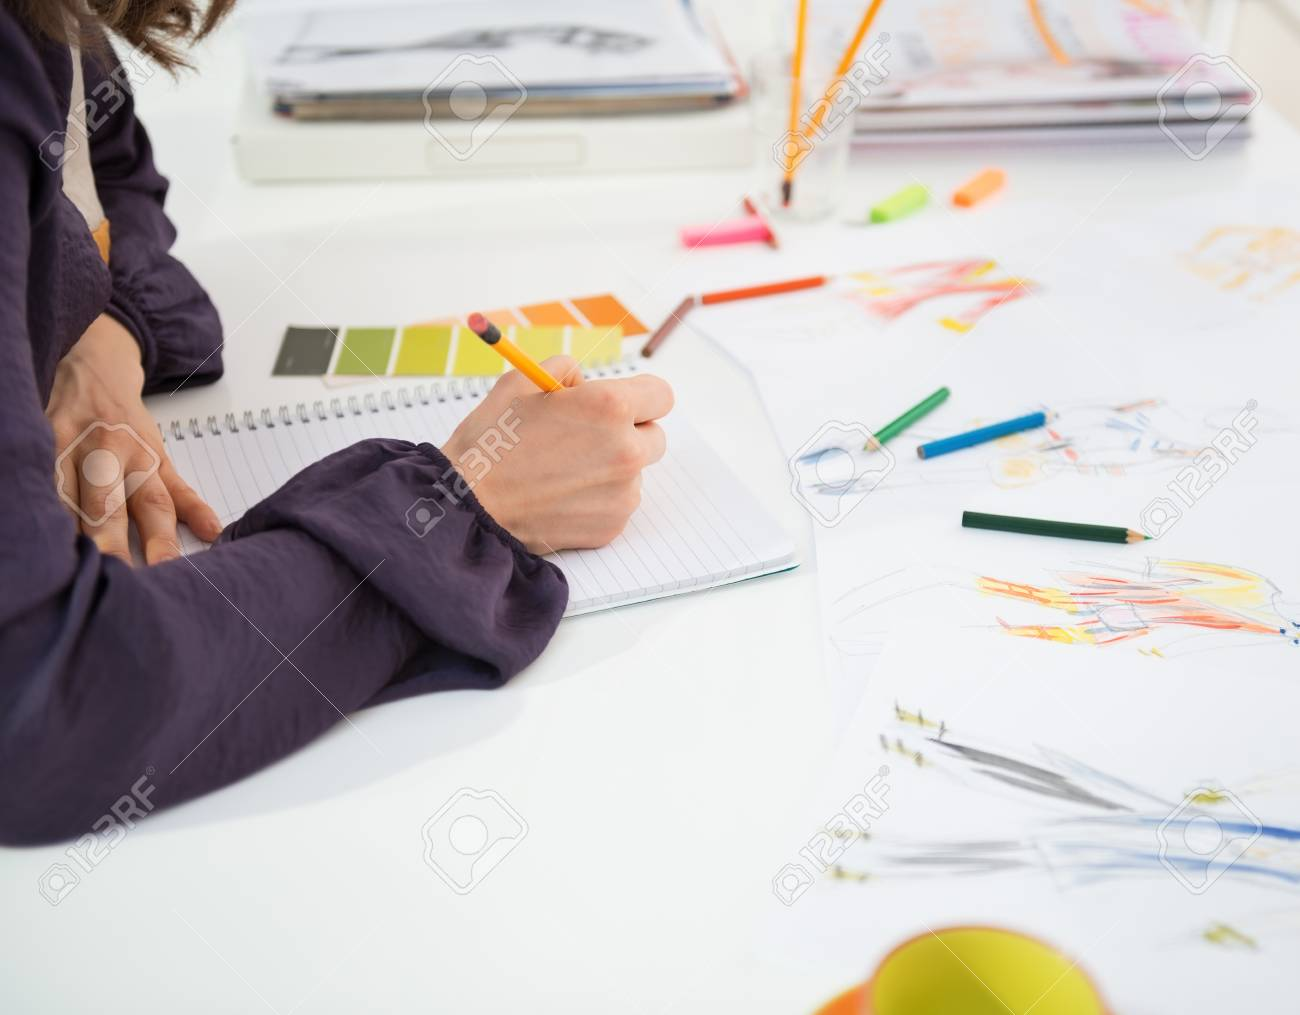 Closeup on fashion designer making sketches in office Stock Photo - 28357838